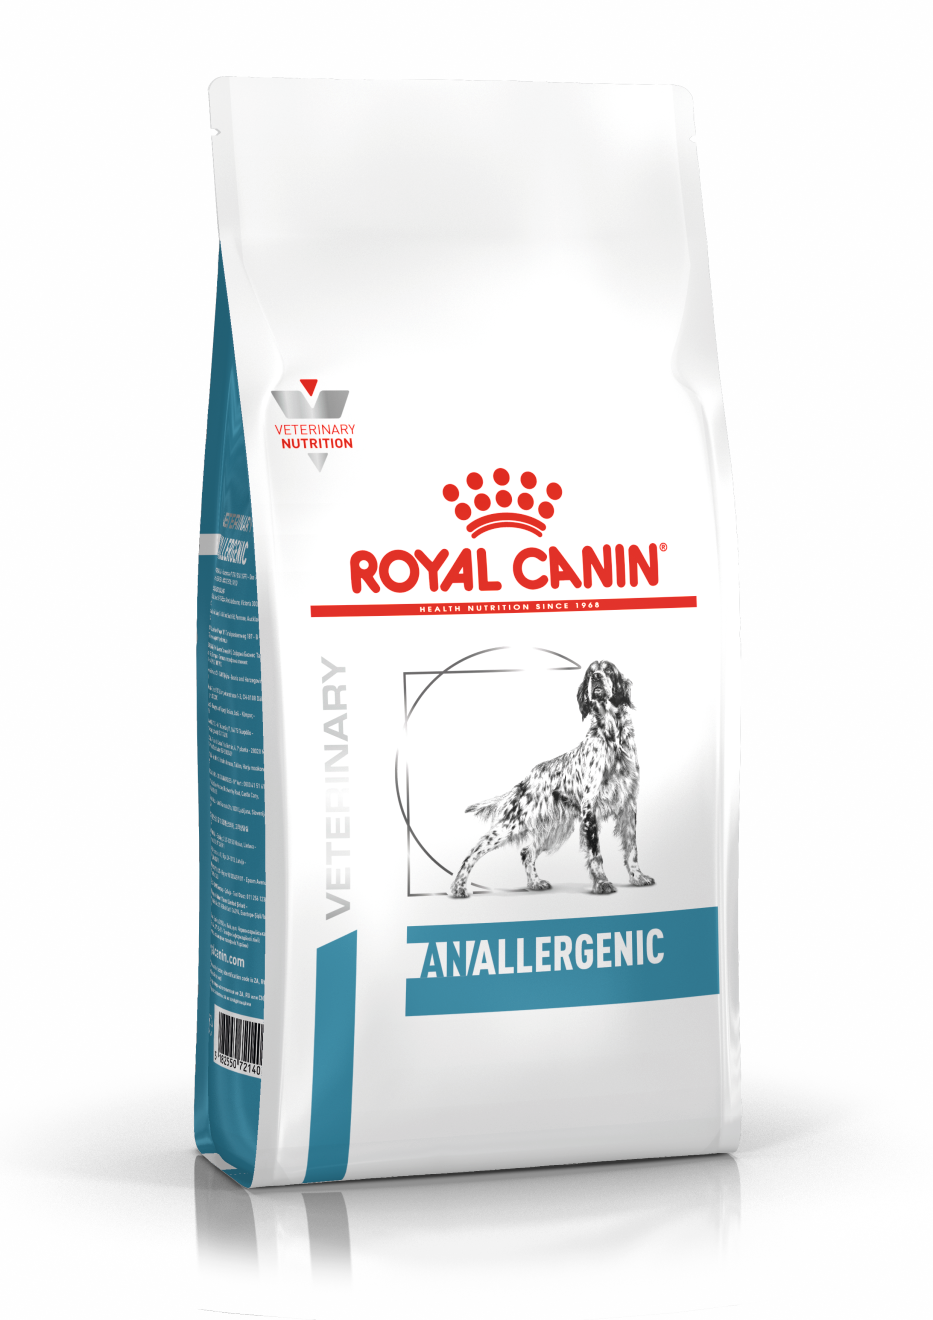 Royal Canin Anallergenic 8 kg (Hund)